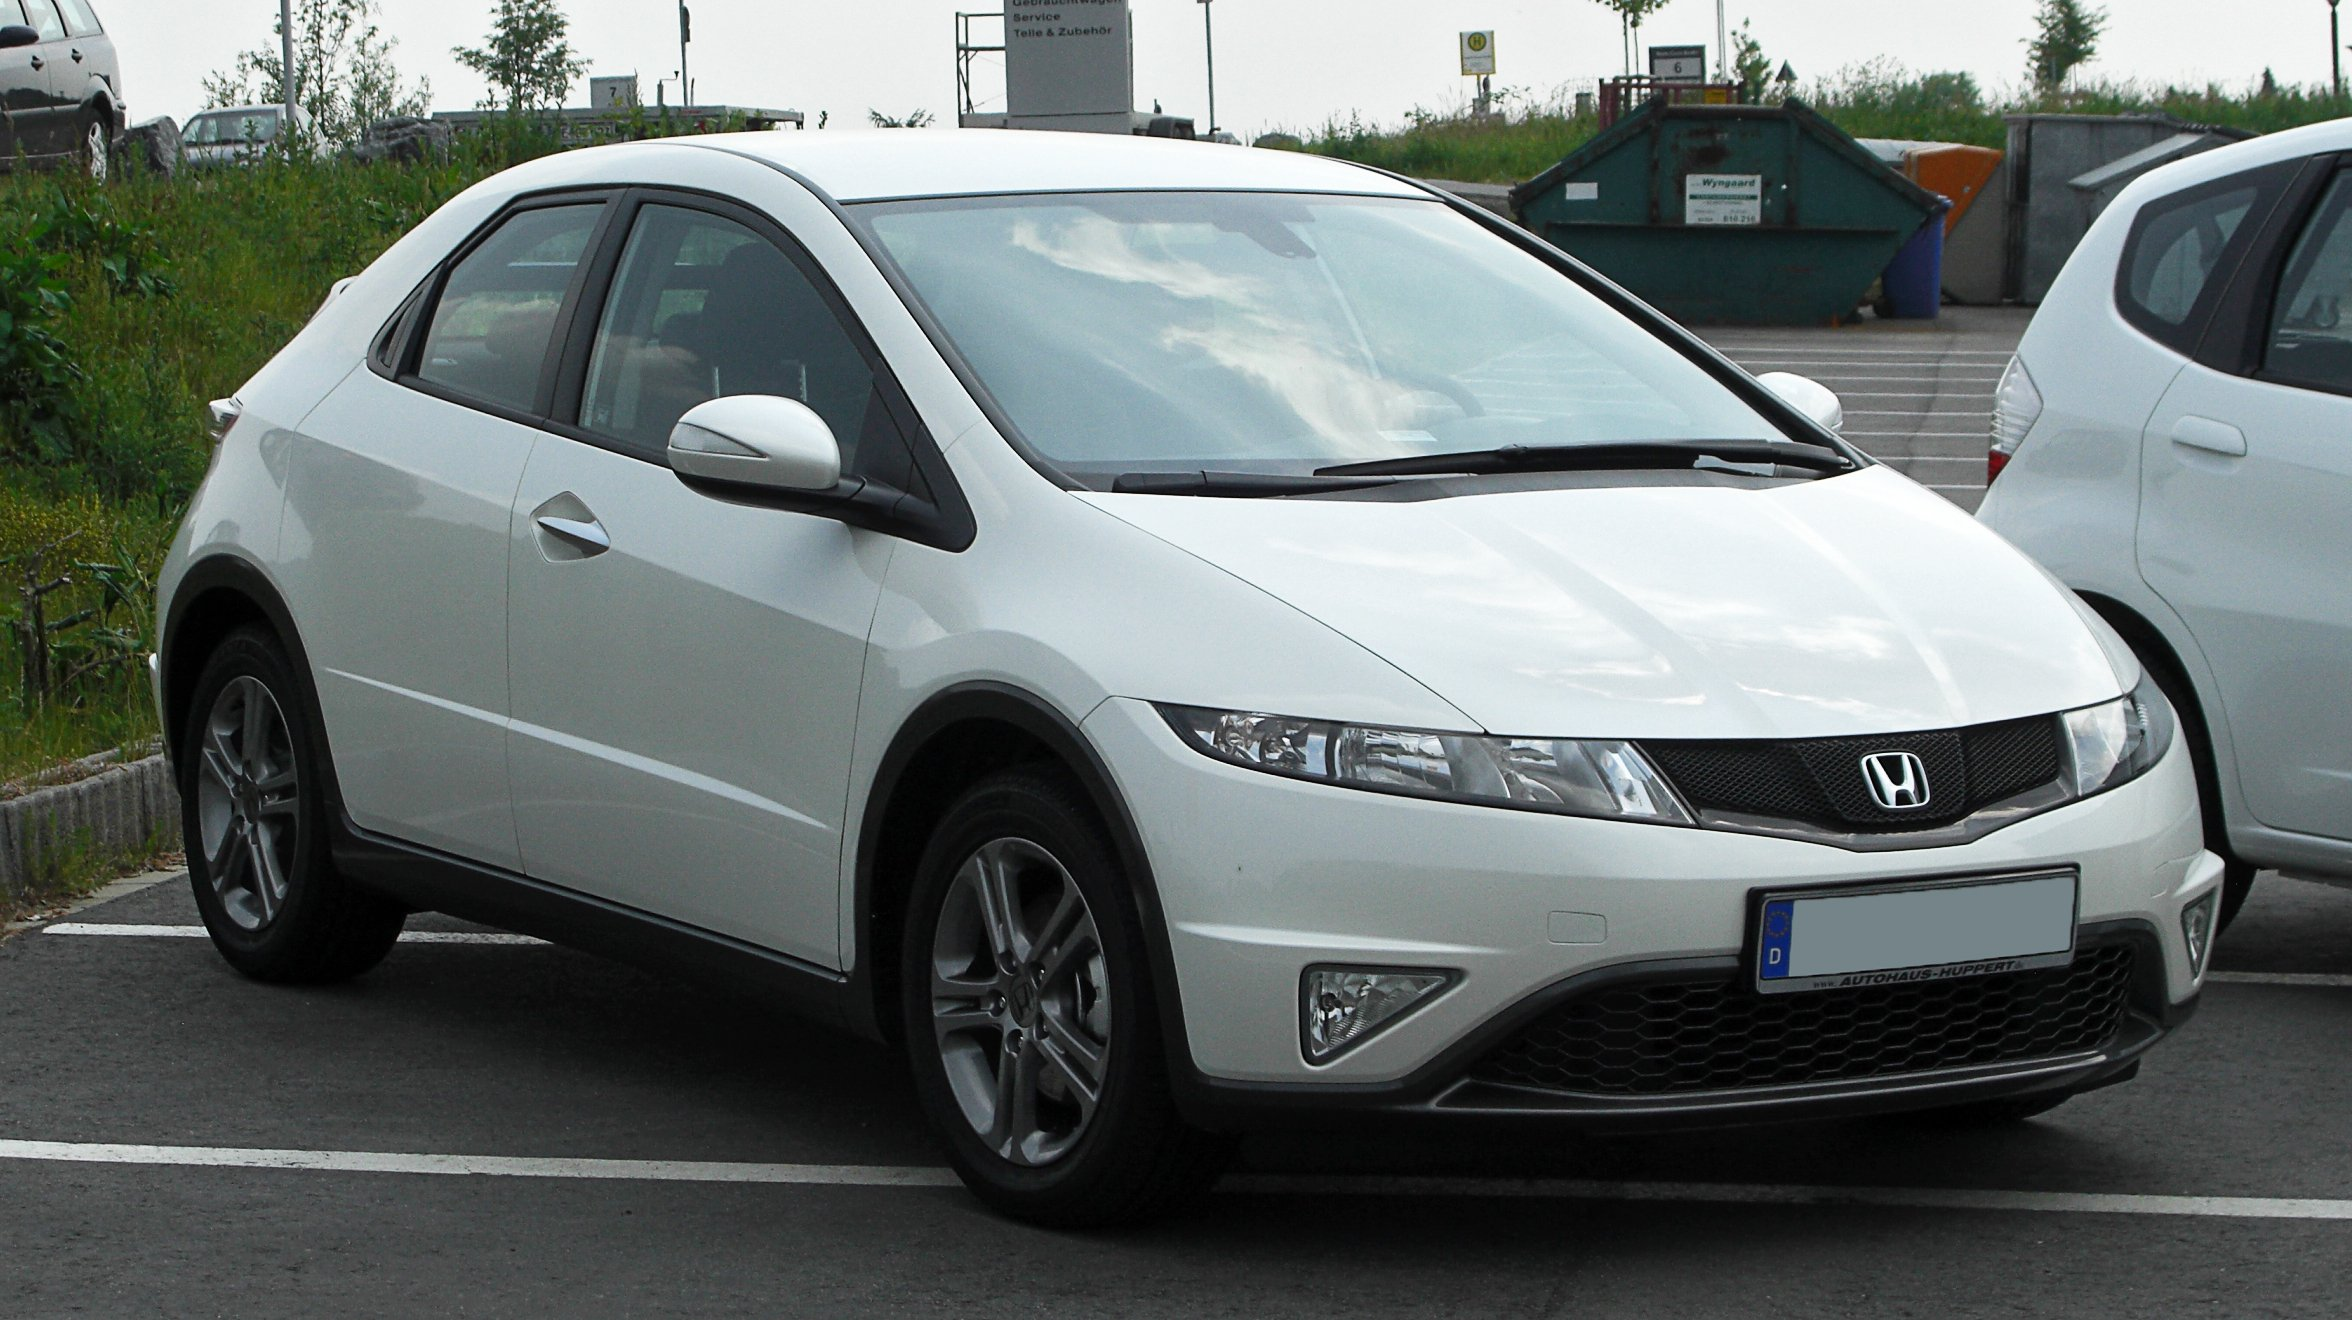 2010 honda civic viii pictures information and specs for Honda civic 2010 model